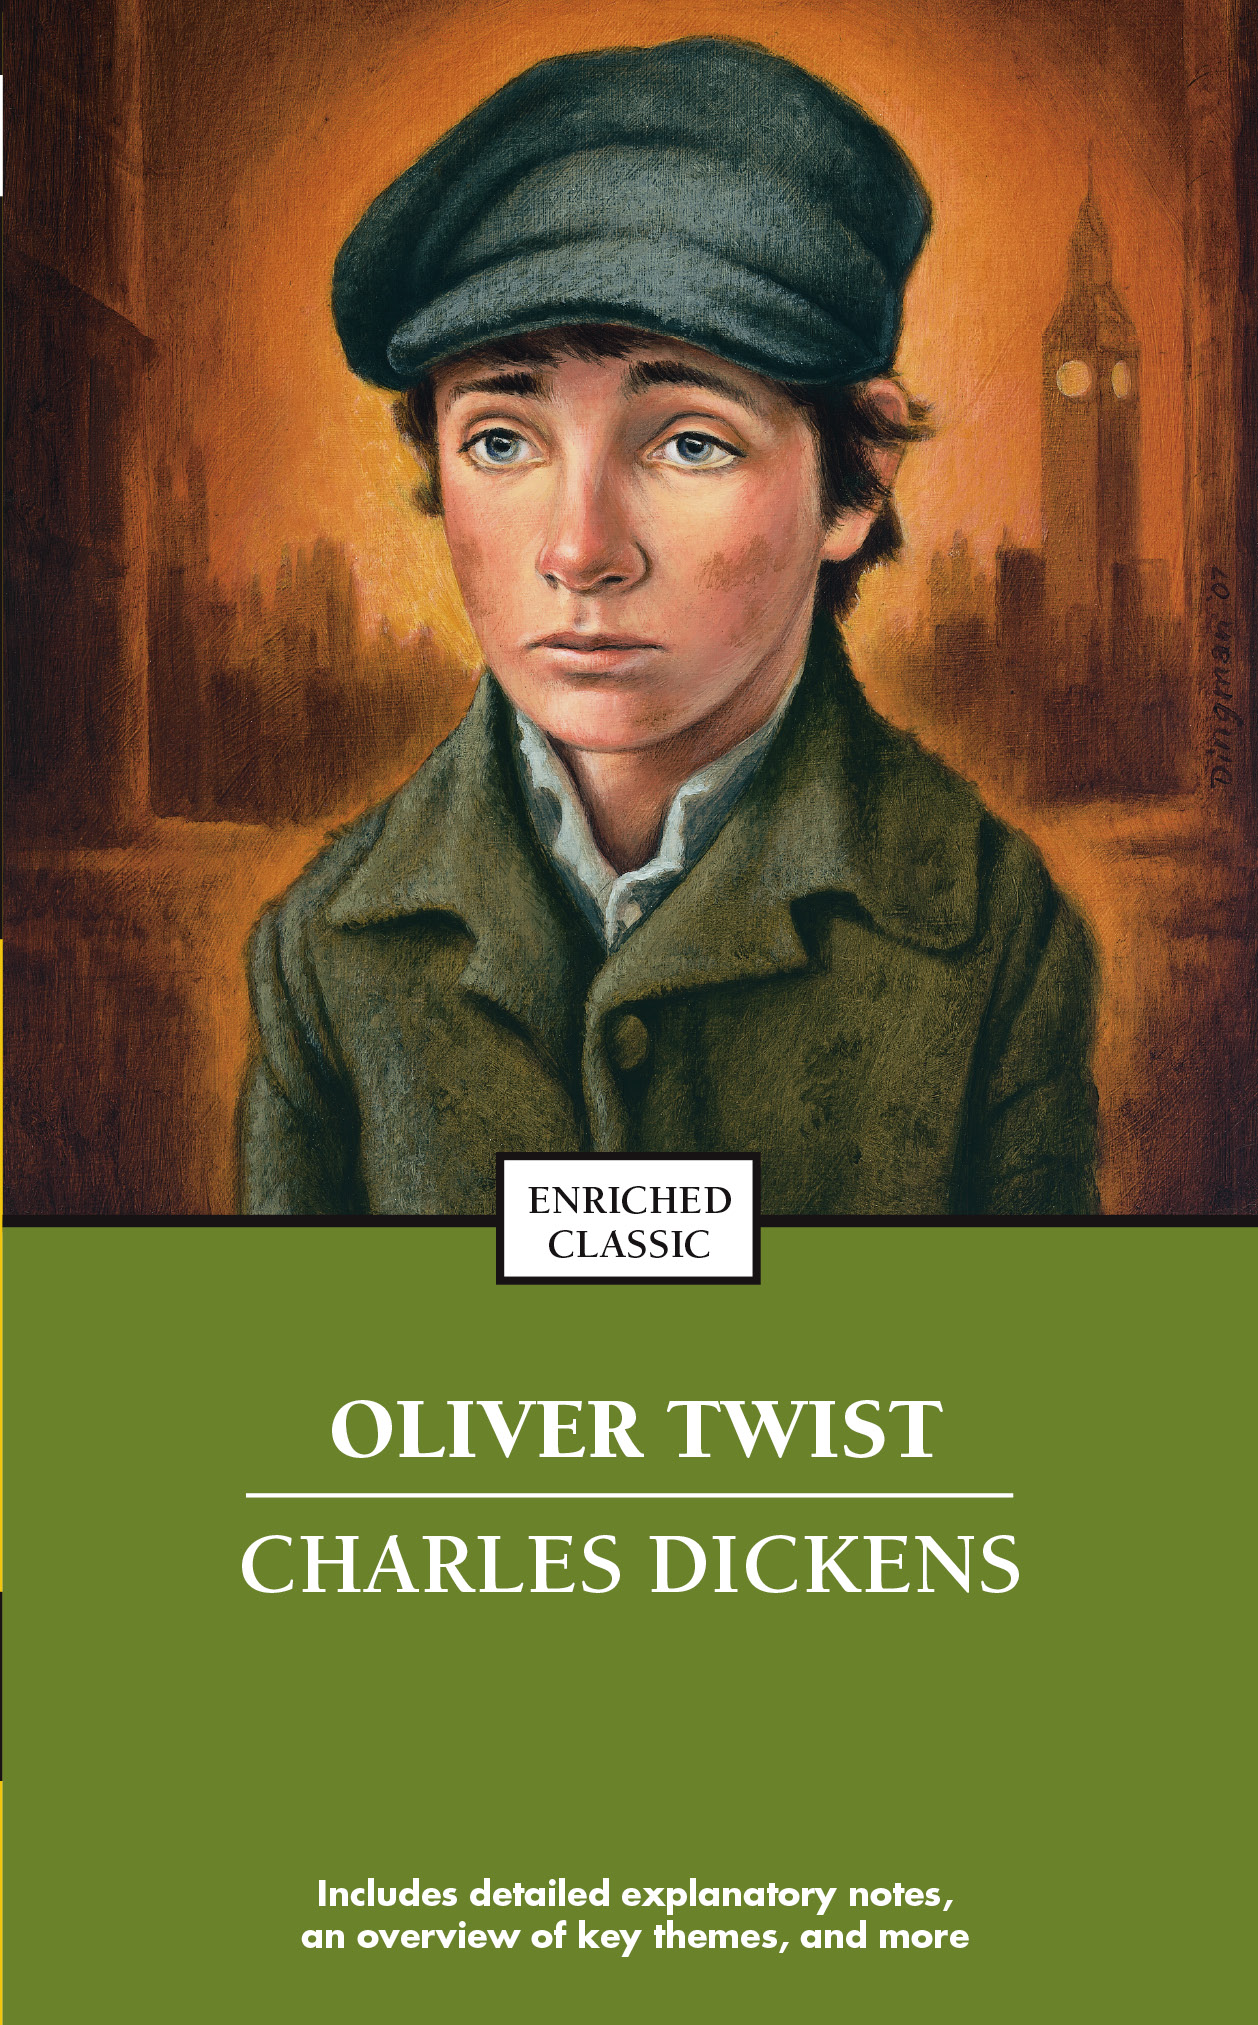 oliver twist book by charles dickens official publisher page cvr9781416534754 9781416534754 hr